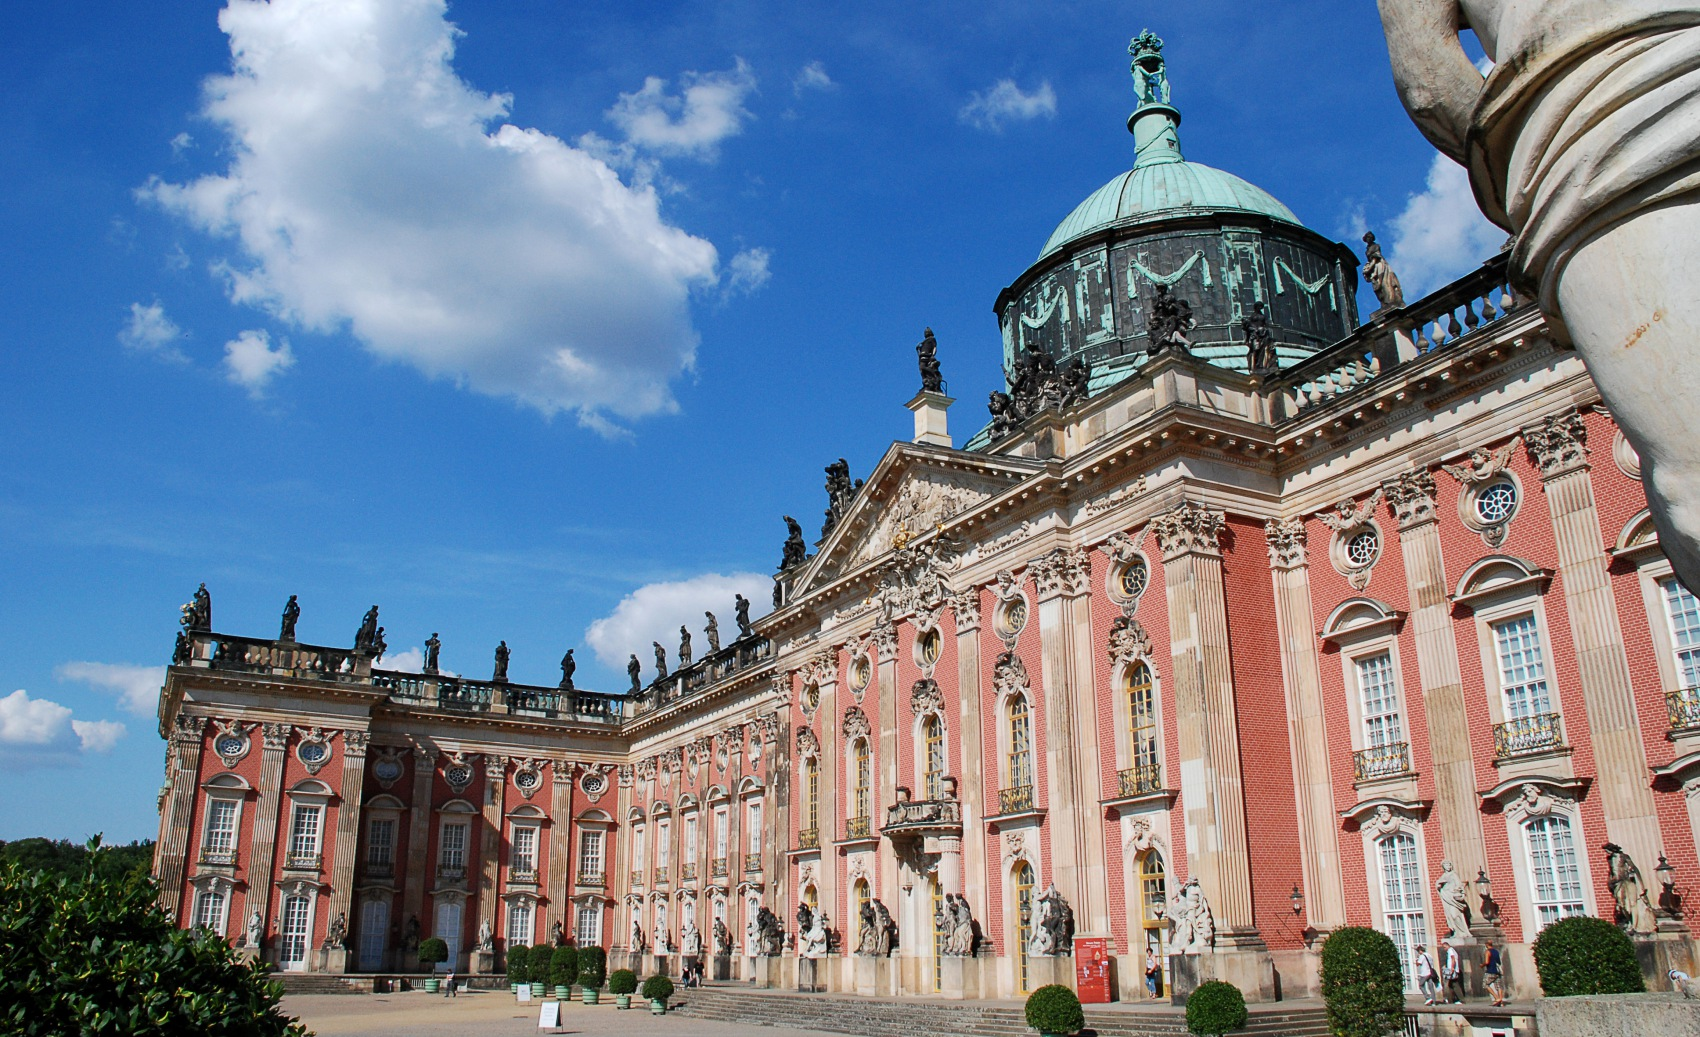 New Palace (German: Neues Palais) in the former royal gardens of Sanssouci